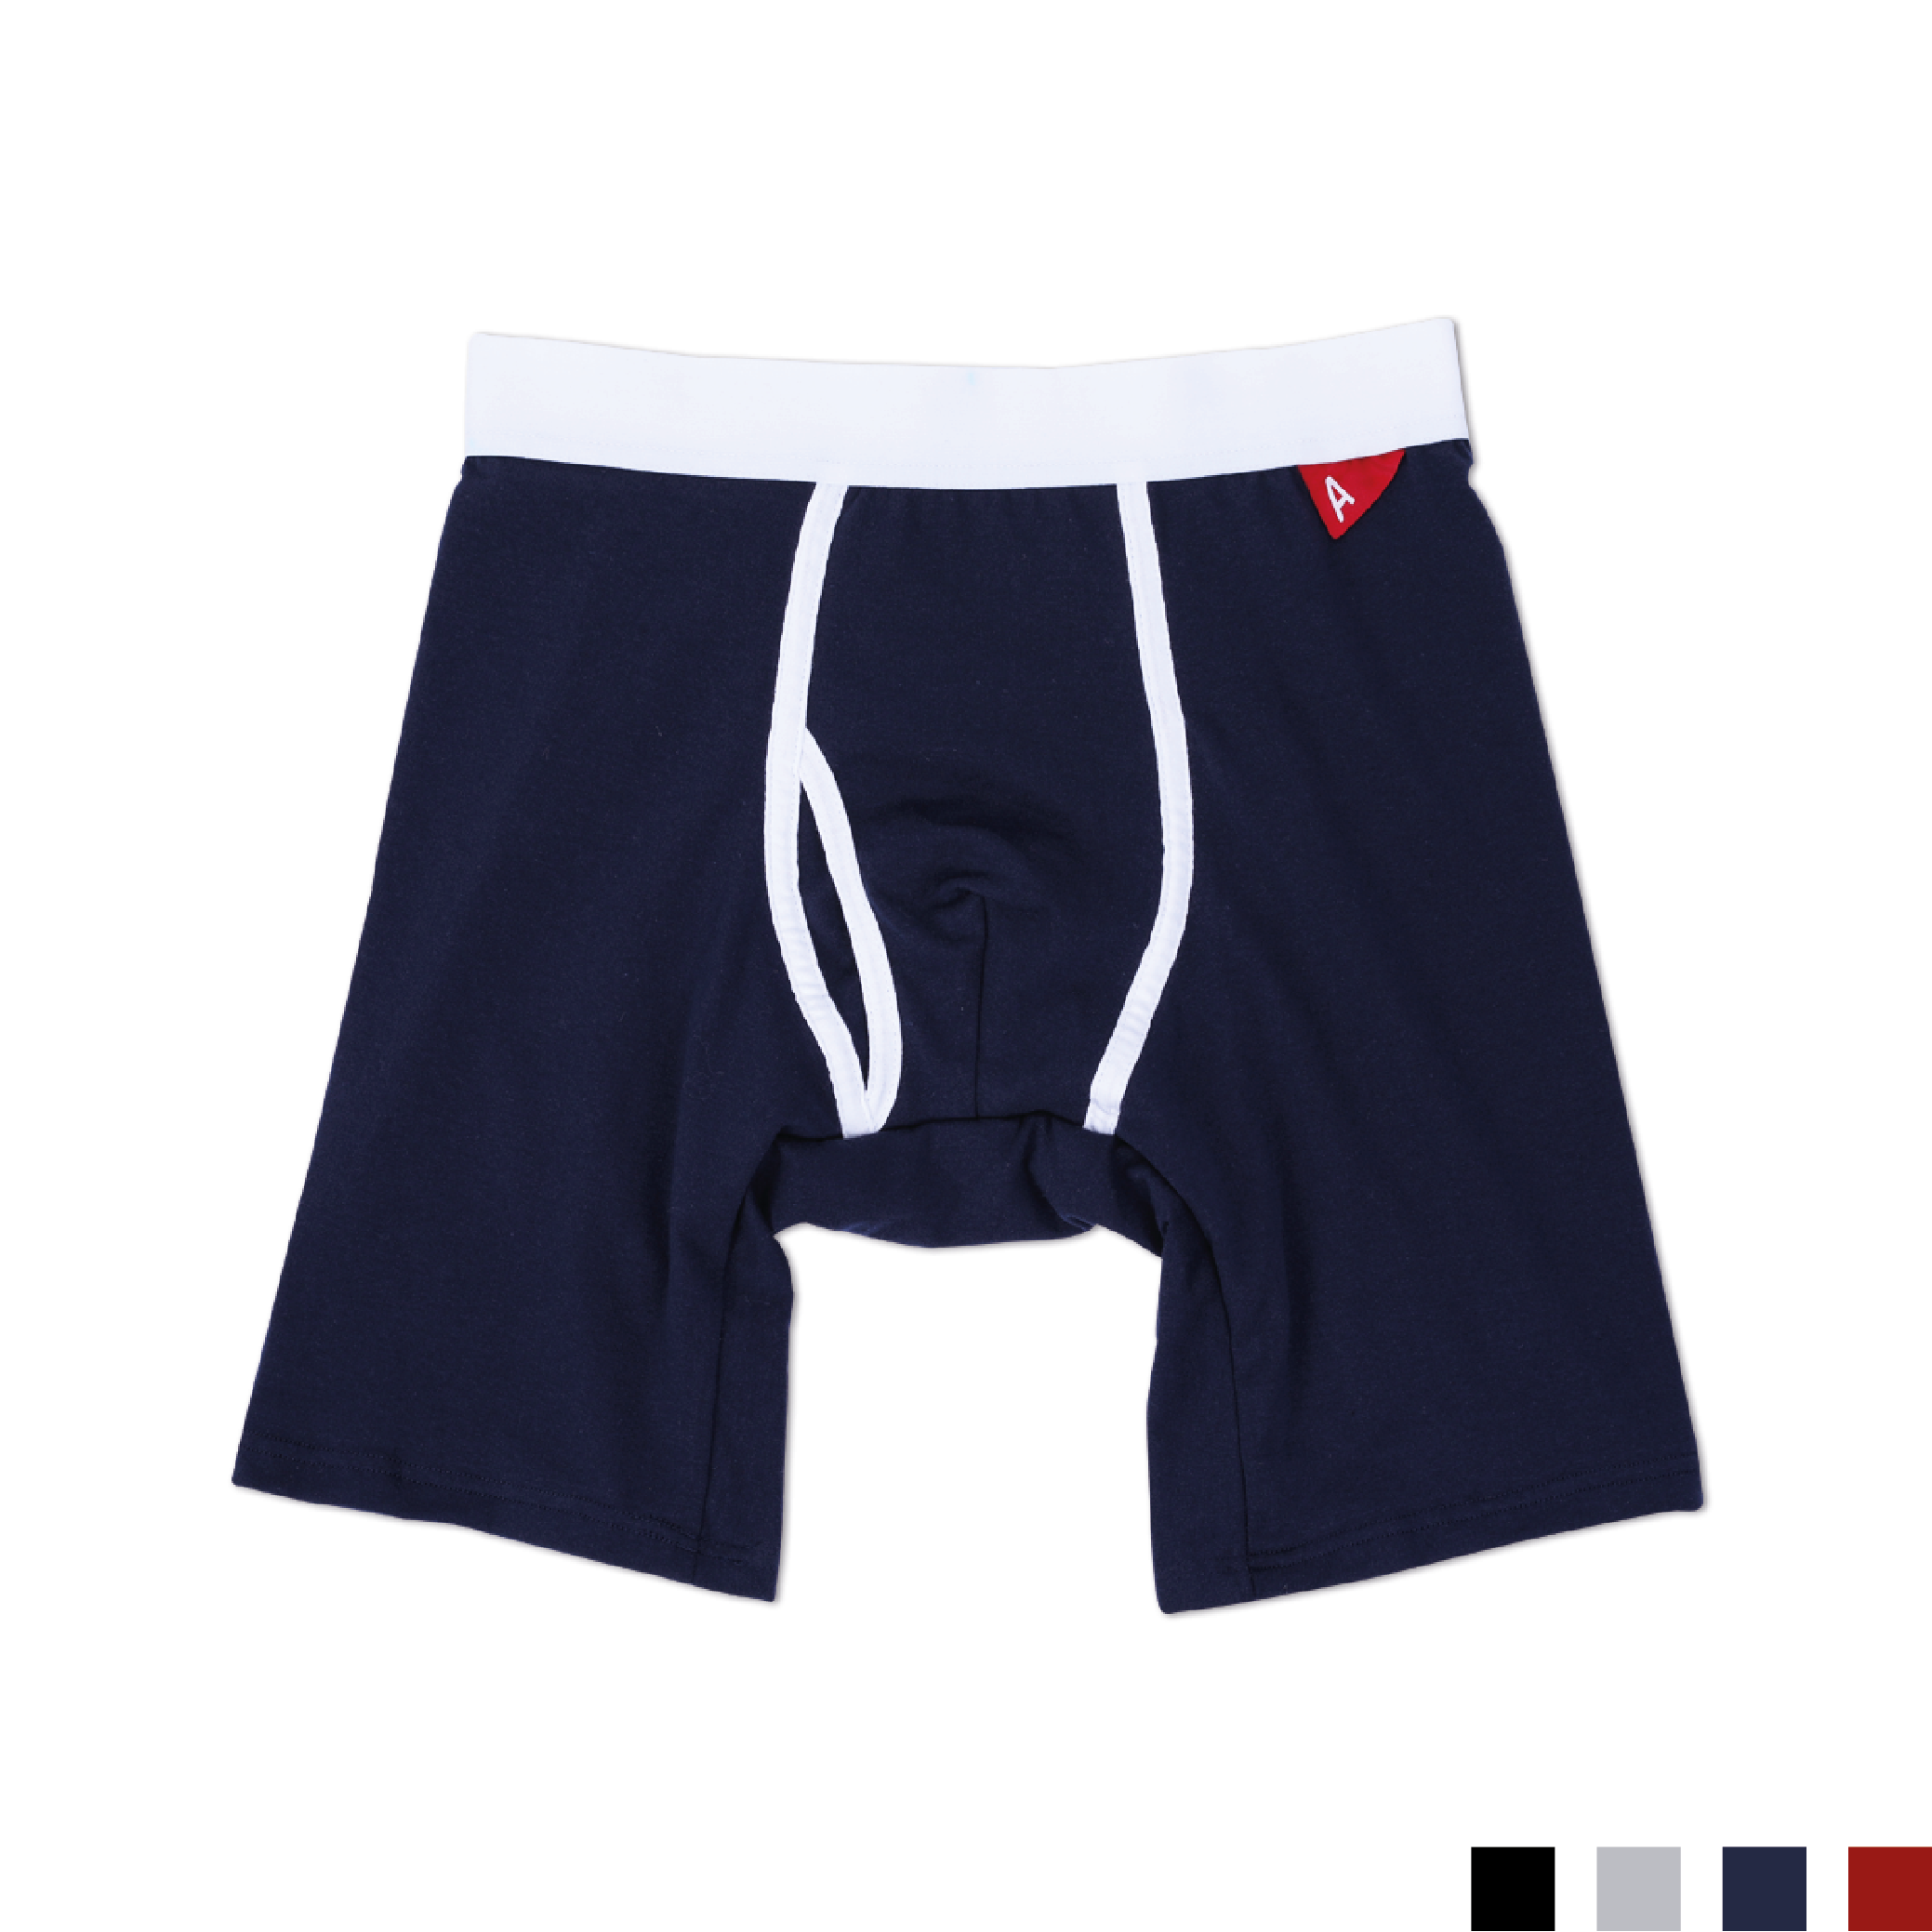 BOXER BRIEF    By  Arvin Goods     A classic brief silhouette joins forces with high-performance fabrics to create a ridiculously competent basic.    SHOP NOW          £12